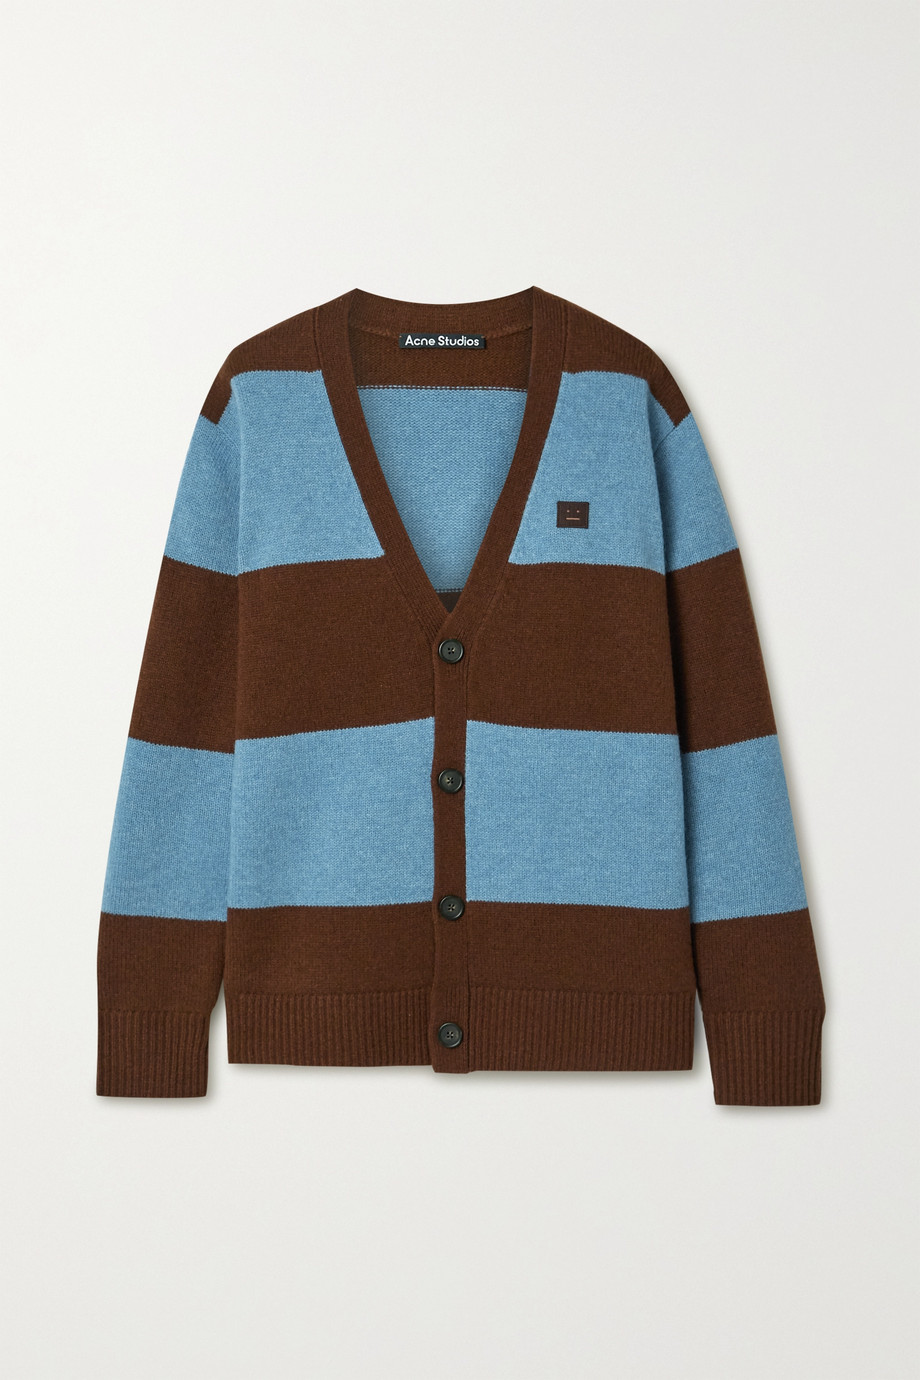 Acne Studios Appliquéd striped wool cardigan